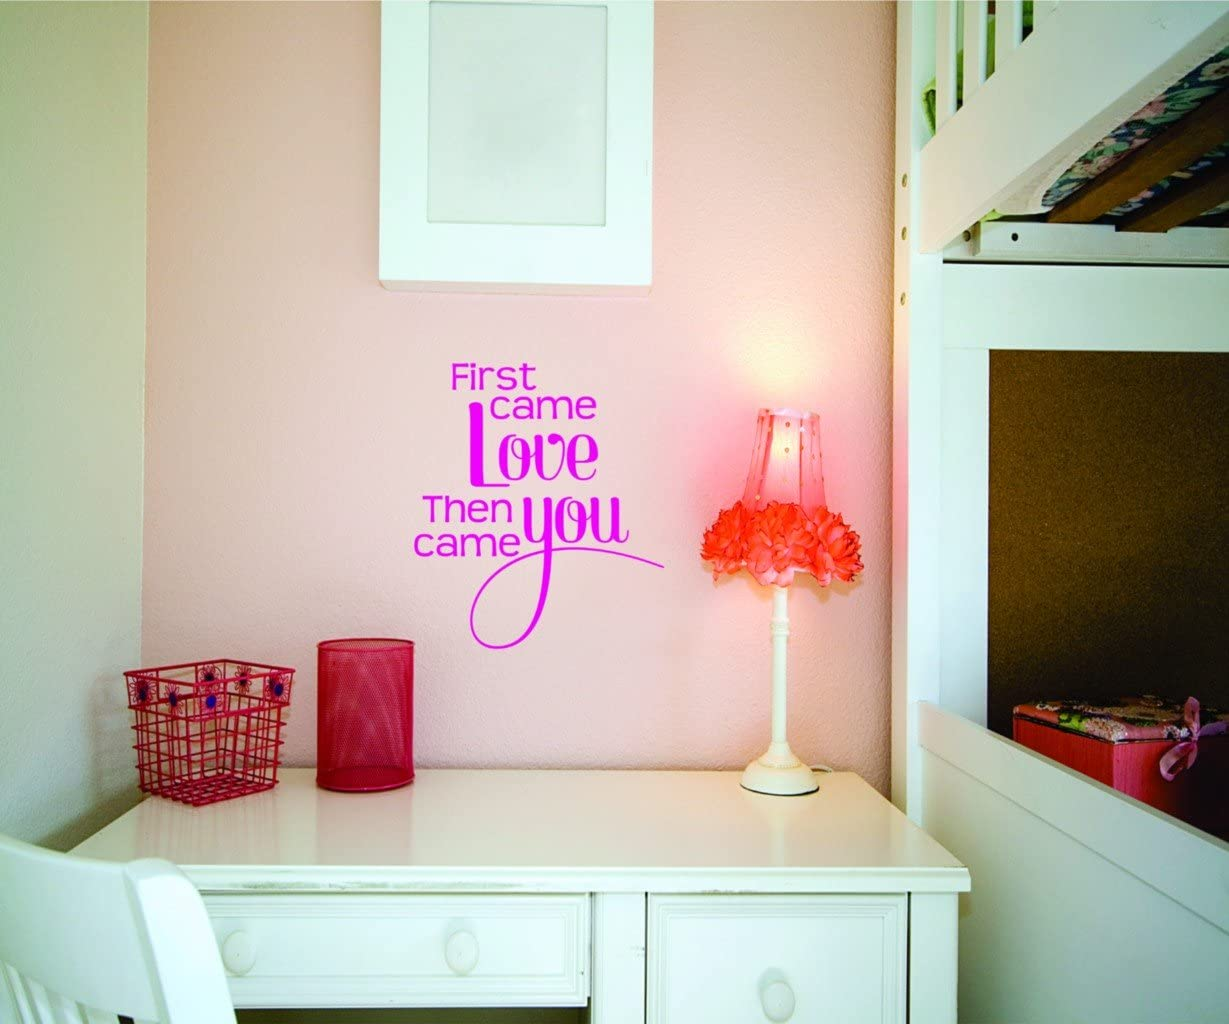 Amazon Com First Came Love Then Came You Picture Art Living Room Peel Stick Sticker Vinyl Wall Decal Size 20 Inches X 20 Inches 22 Colors Available Kitchen Dining